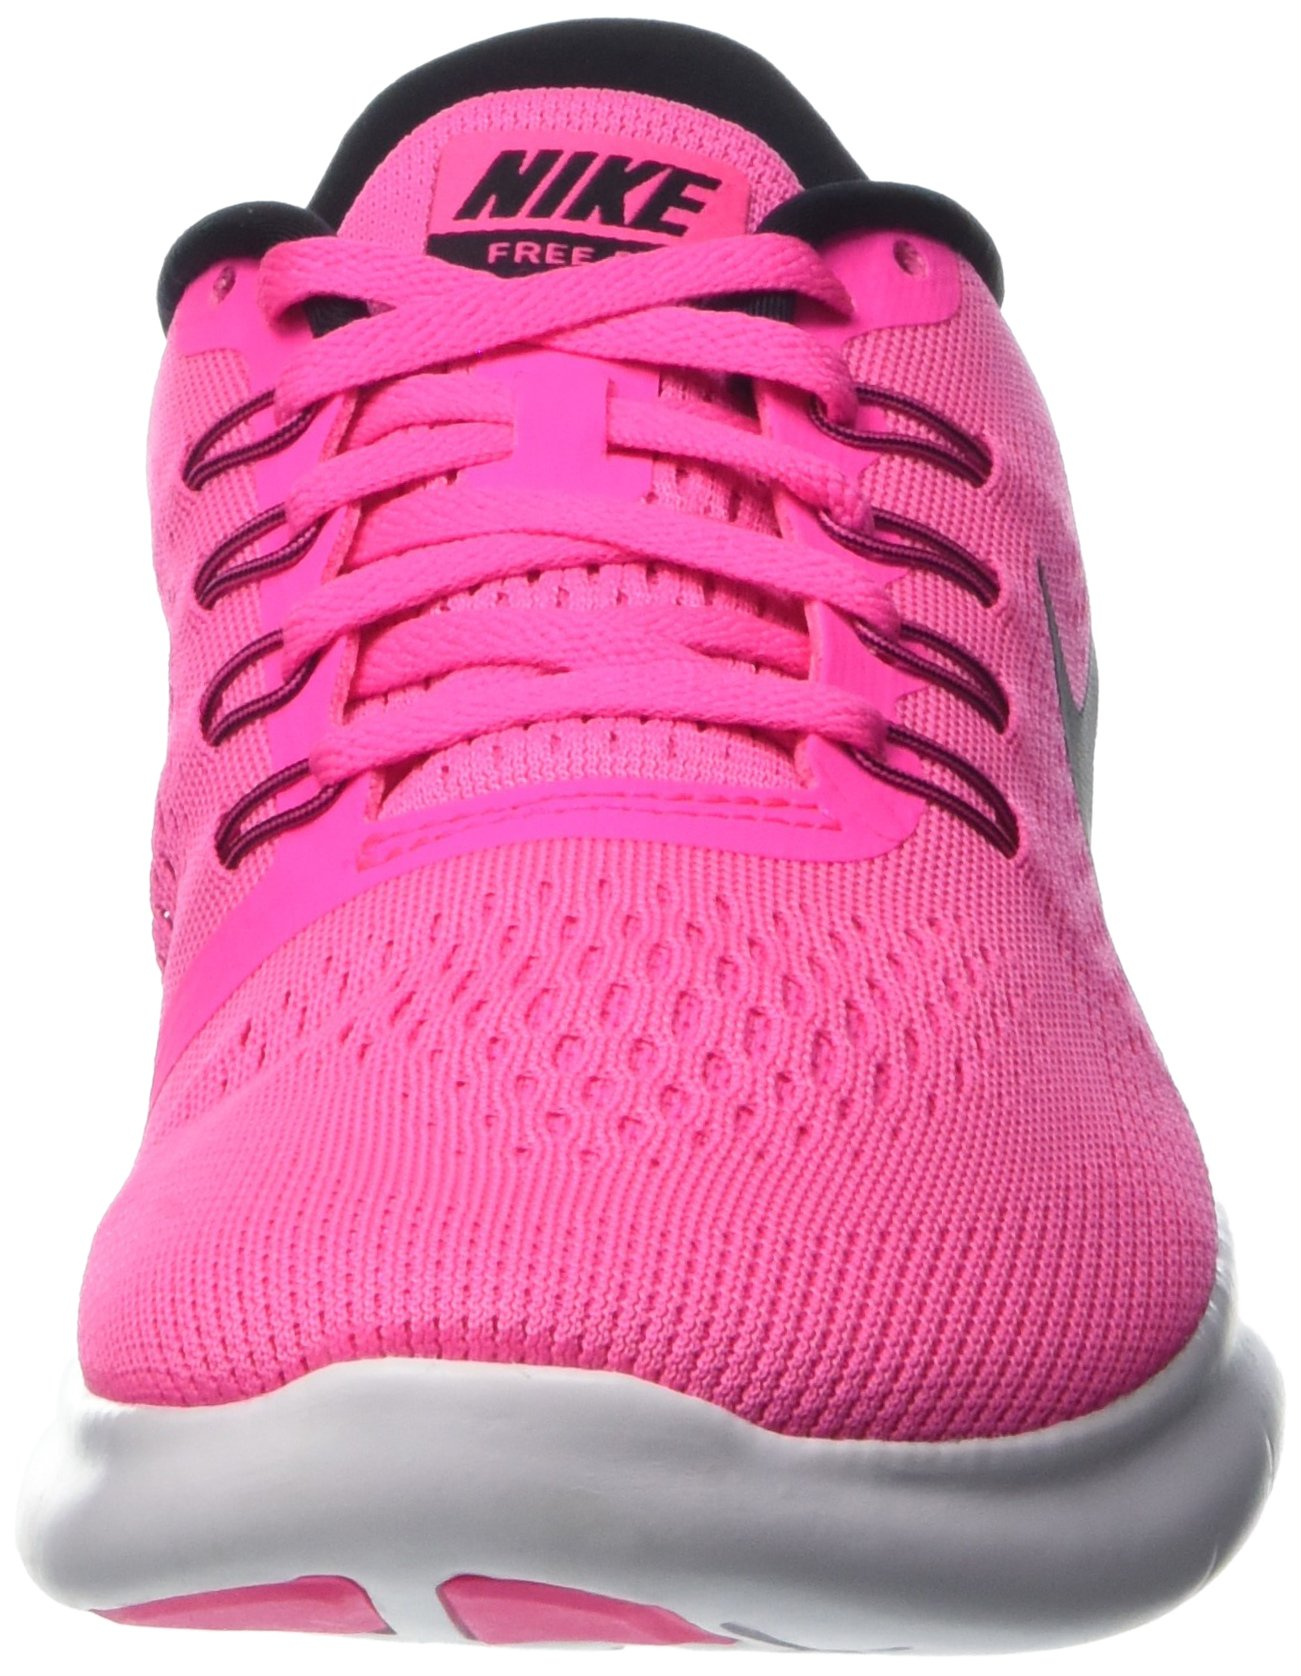 Nike Womens Free RN Running Shoes Pink Blast/Fire Pink/White/Black 5 B(M) US by Nike (Image #4)